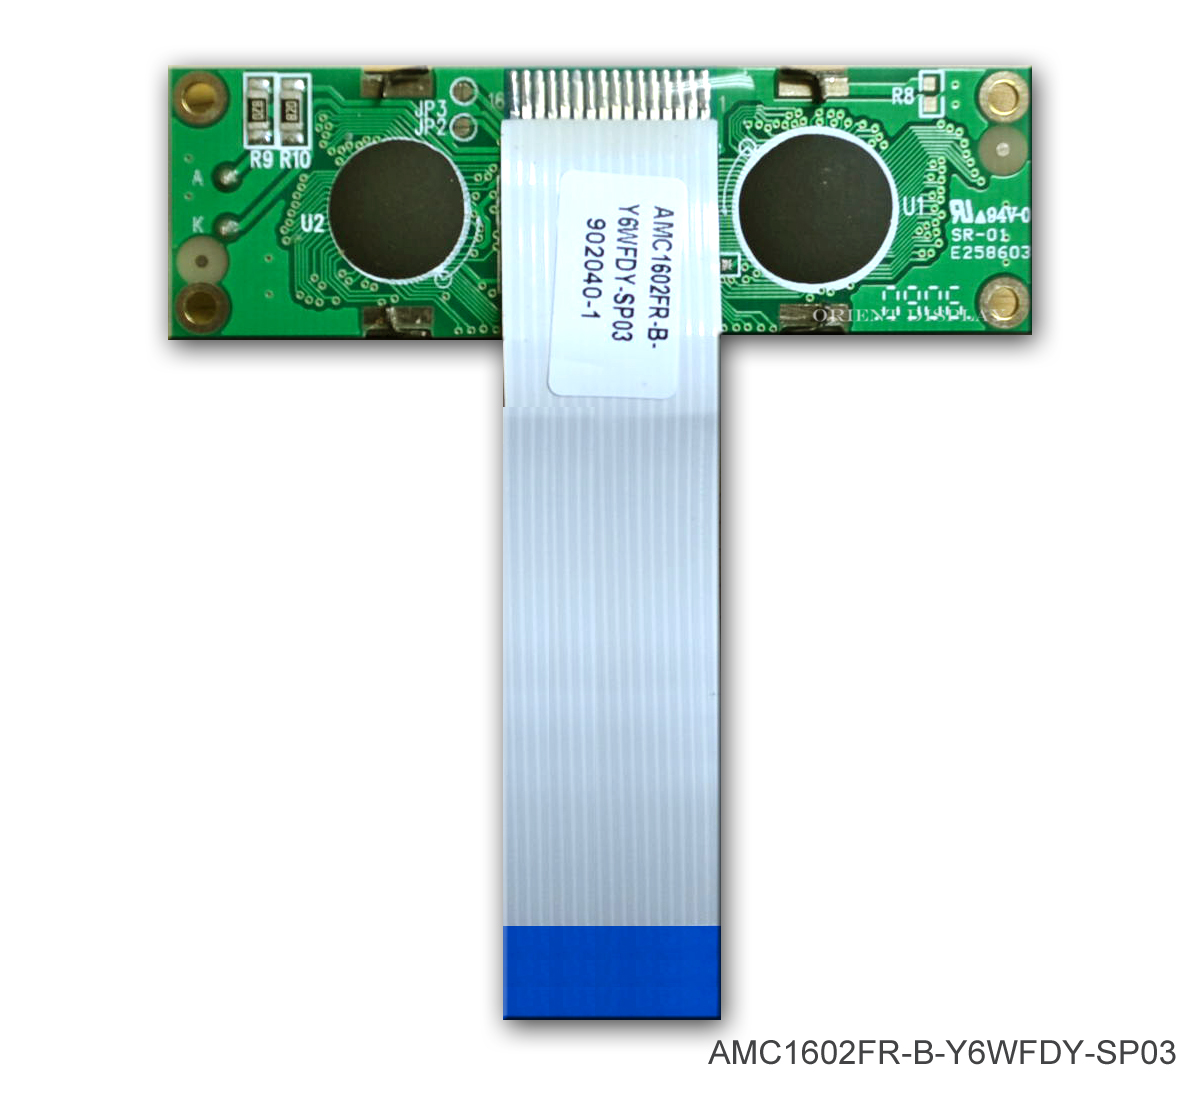 AMC1602FR-B-Y6WFDY-SP03 (16x2 Character LCD Module)